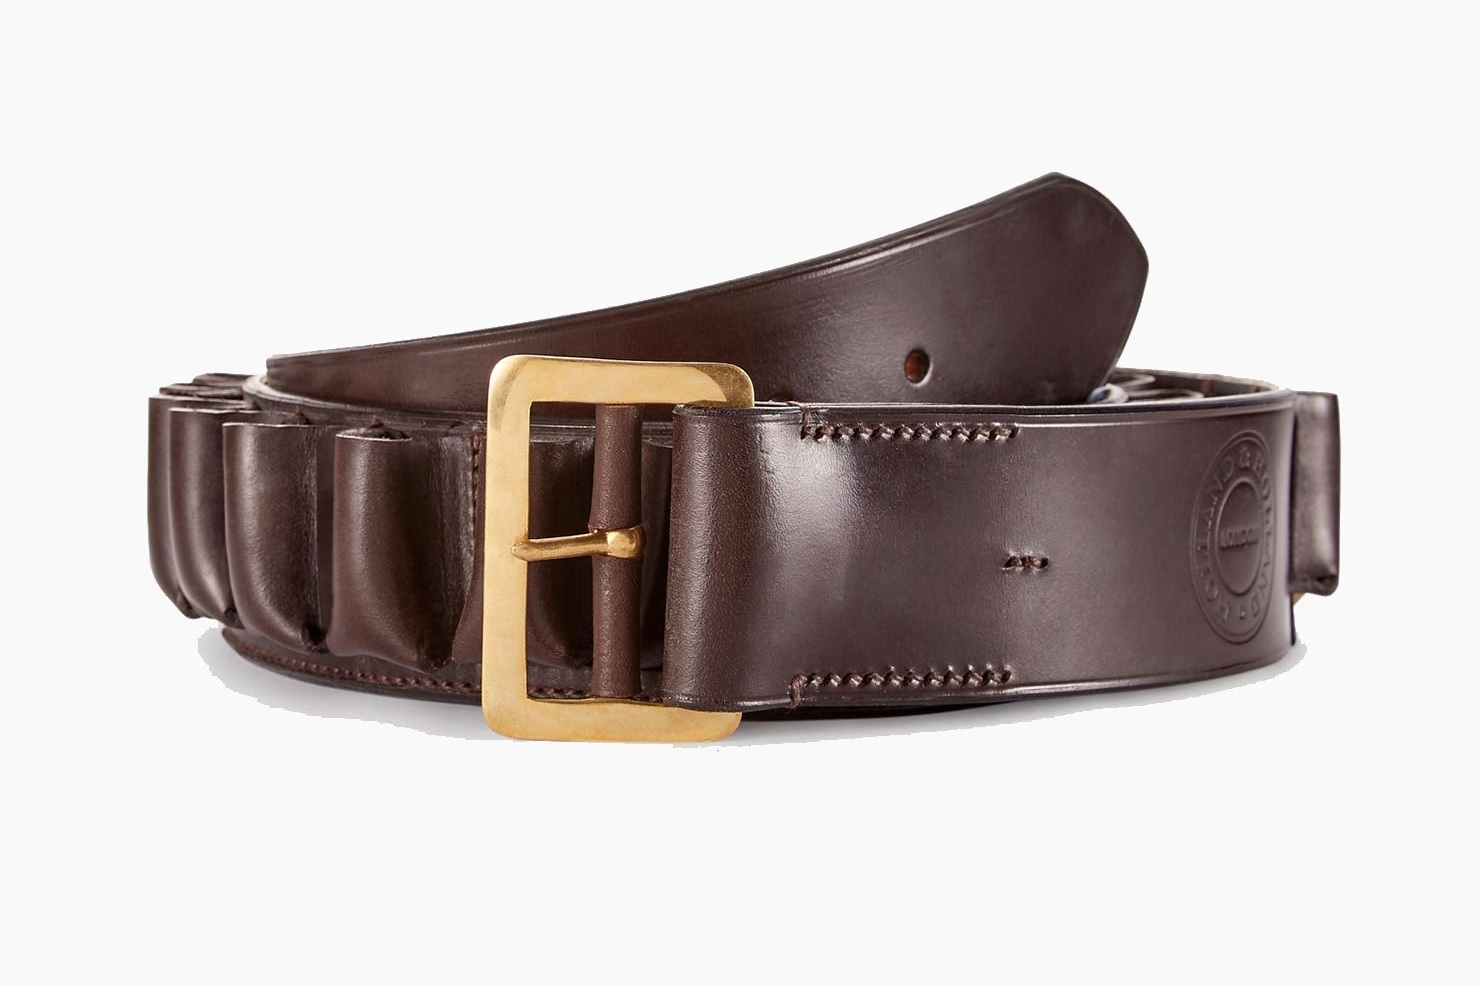 holland & holland LEATHER CARTRIDGE BELT - For the father who likes to keep his ammo handy and appreciates world-class leather craftsmanship. This belt is available in all calibers and sizes in dark brown leather with space for 25 cartridges. Made in England.